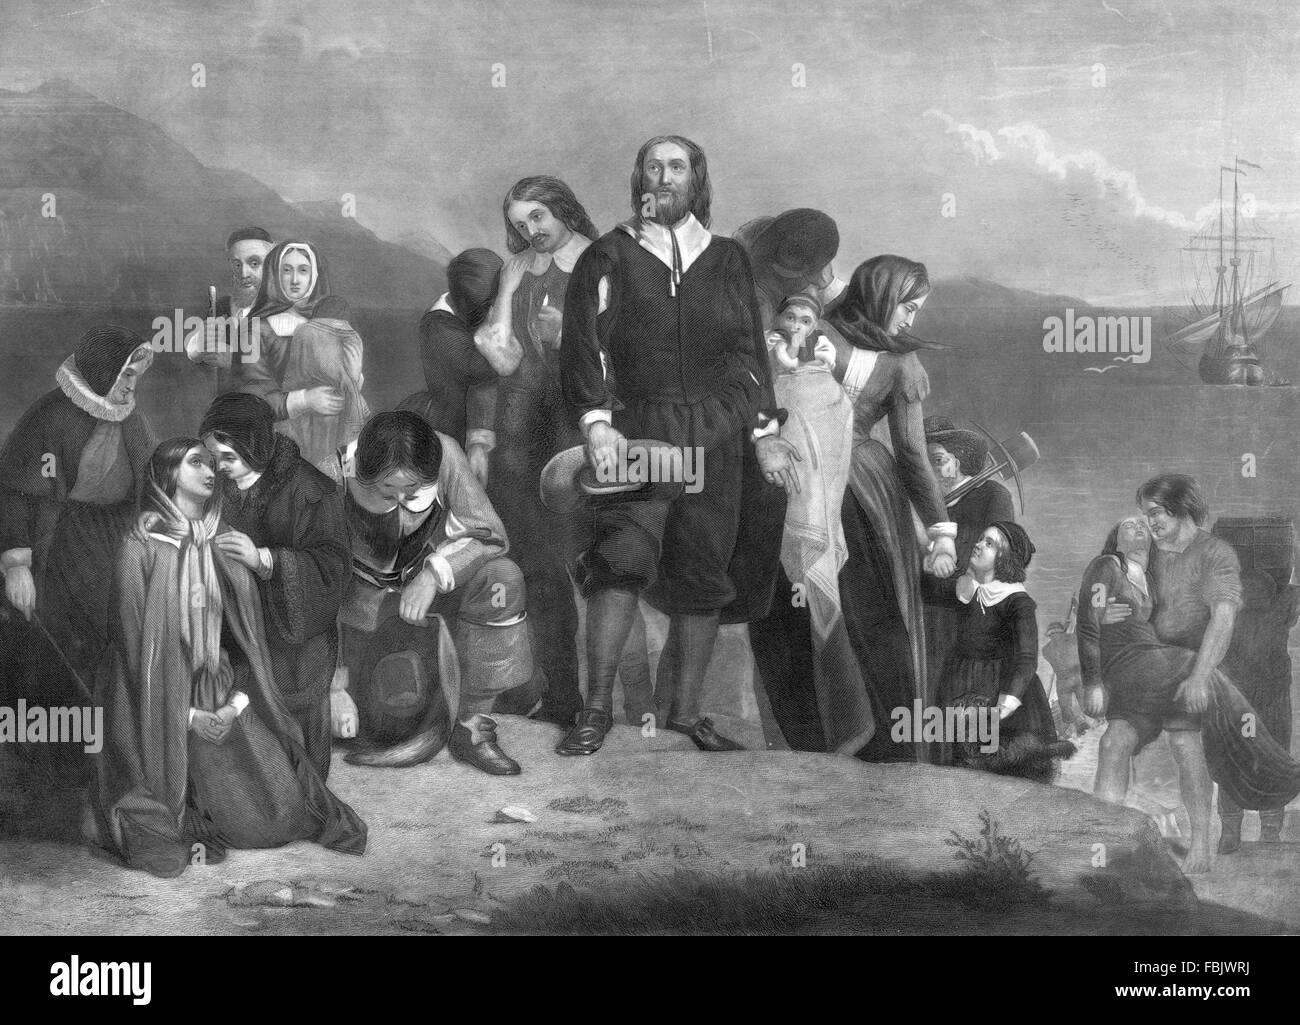 the early pilgrims in north america in the 1620s The history of english immigration to america began in the 1600's when england established colonies on the east coast of north america the colonists all belonged to the anglo-saxon race and shared the same ethnic origin, identity, language, heritage, culture, education, history and physical characteristics.